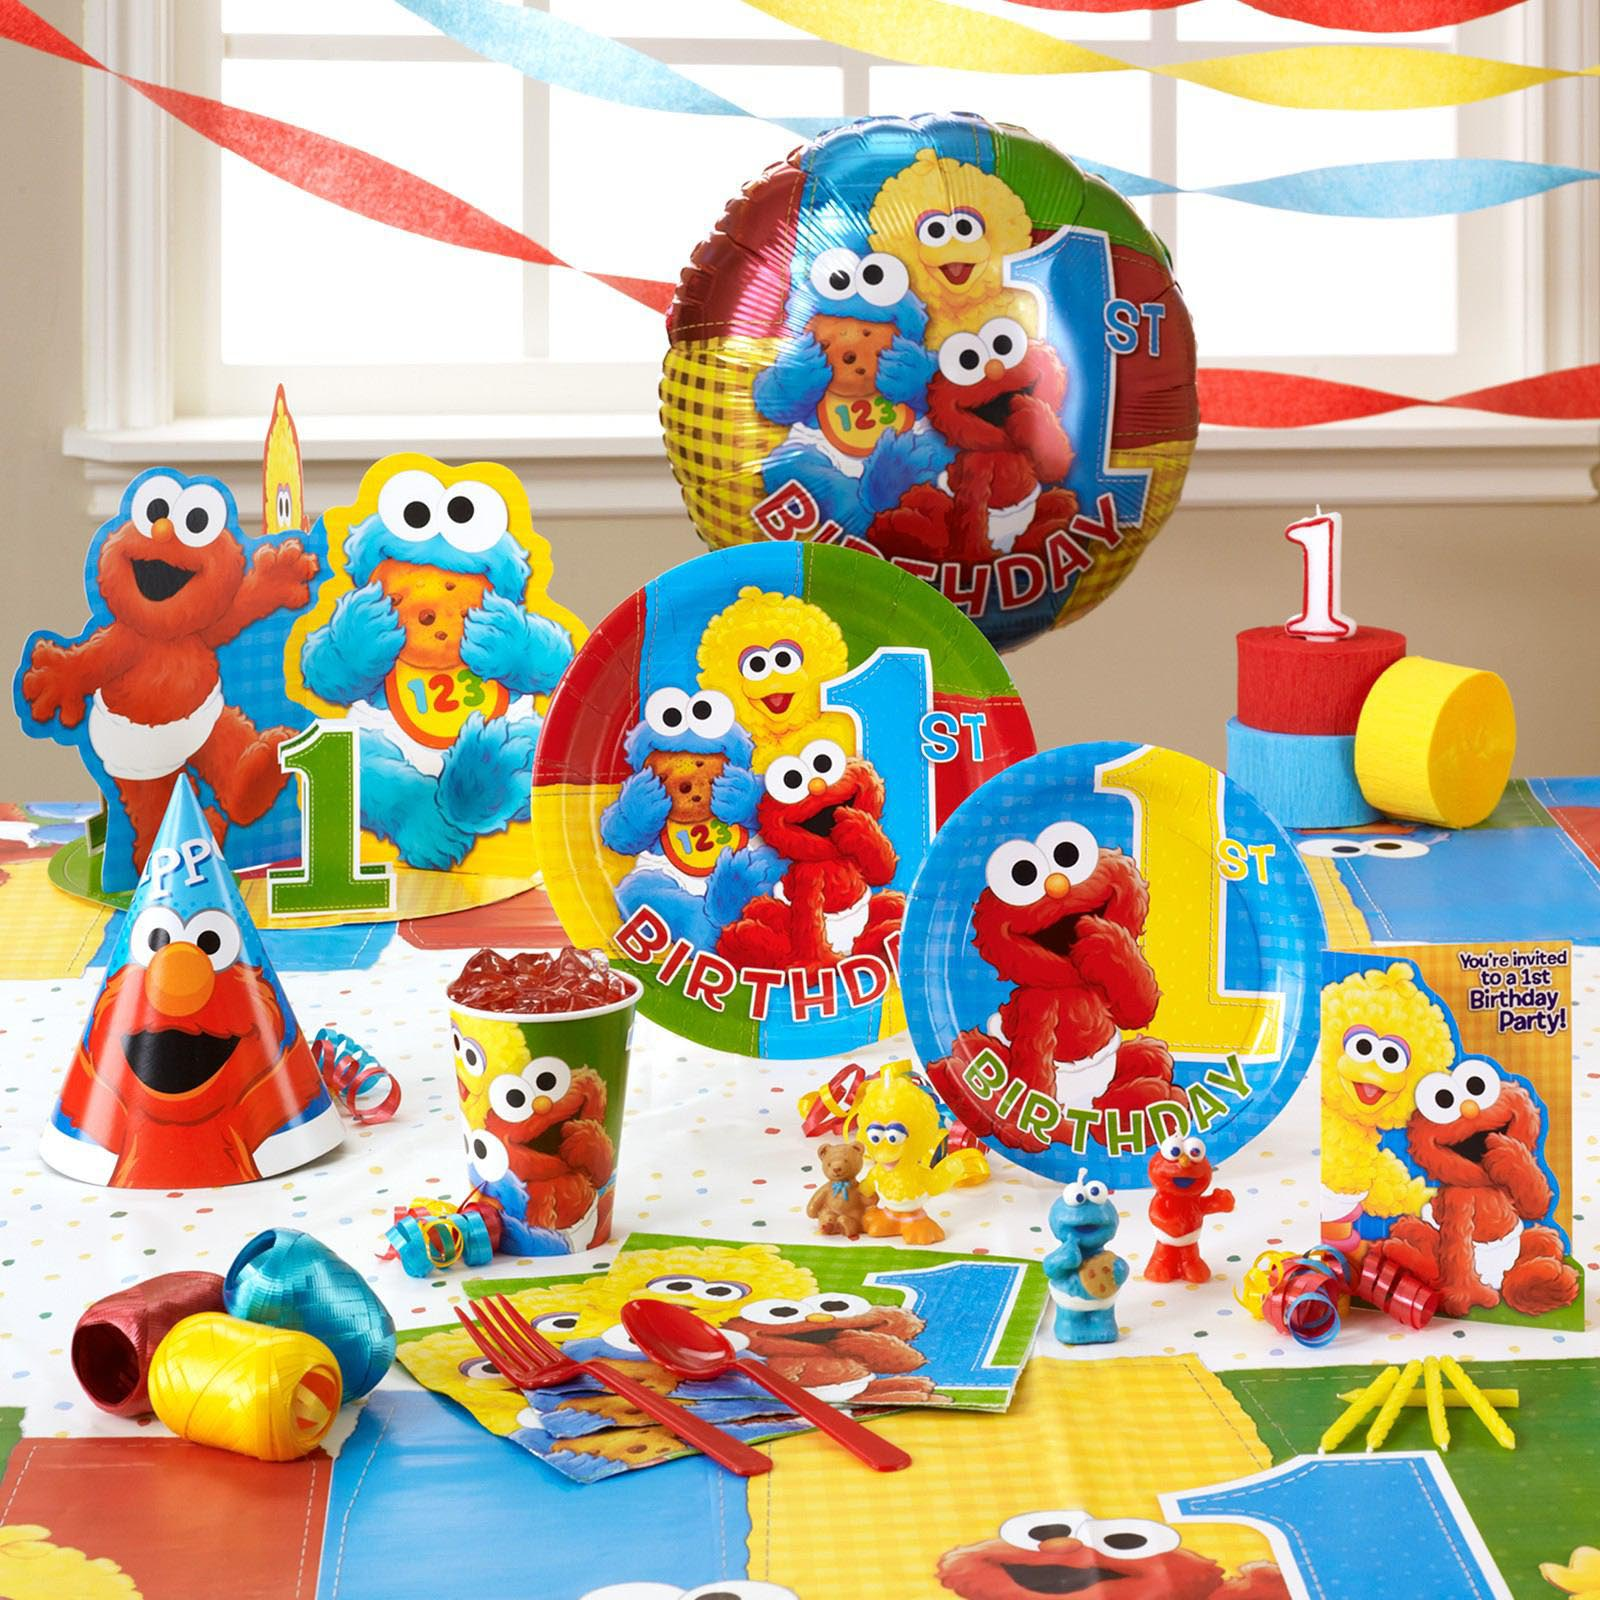 Elmo 1st birthday party ideas birthday party sesamestreet - Baby Elmo 1st Birthday Party Supplies